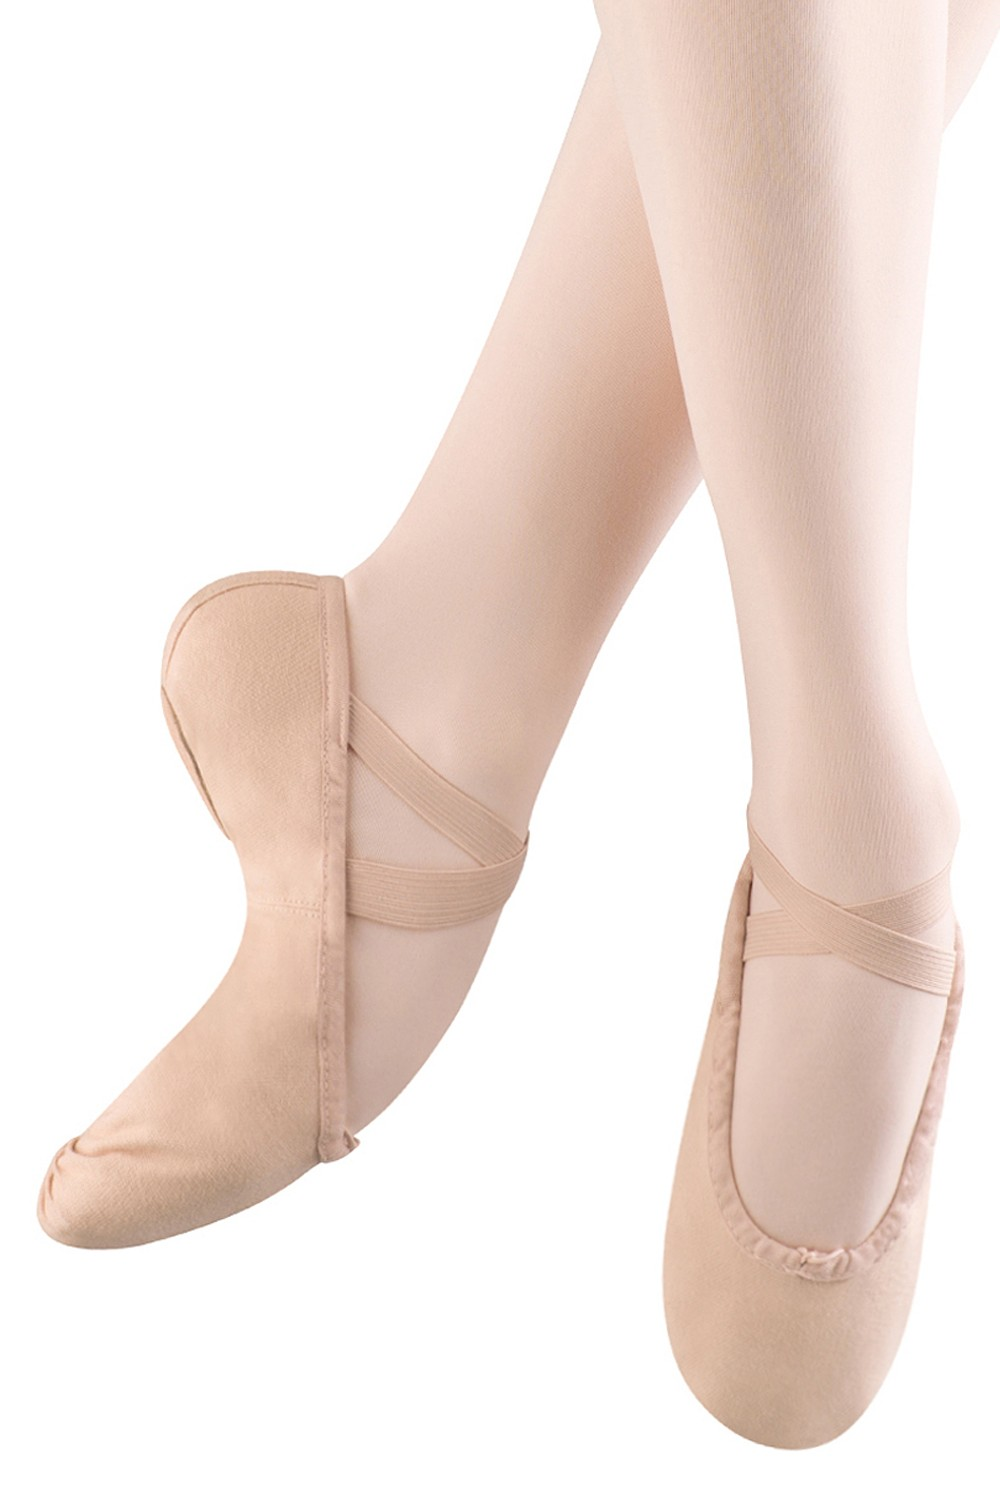 Pump   Women's Ballet Shoes